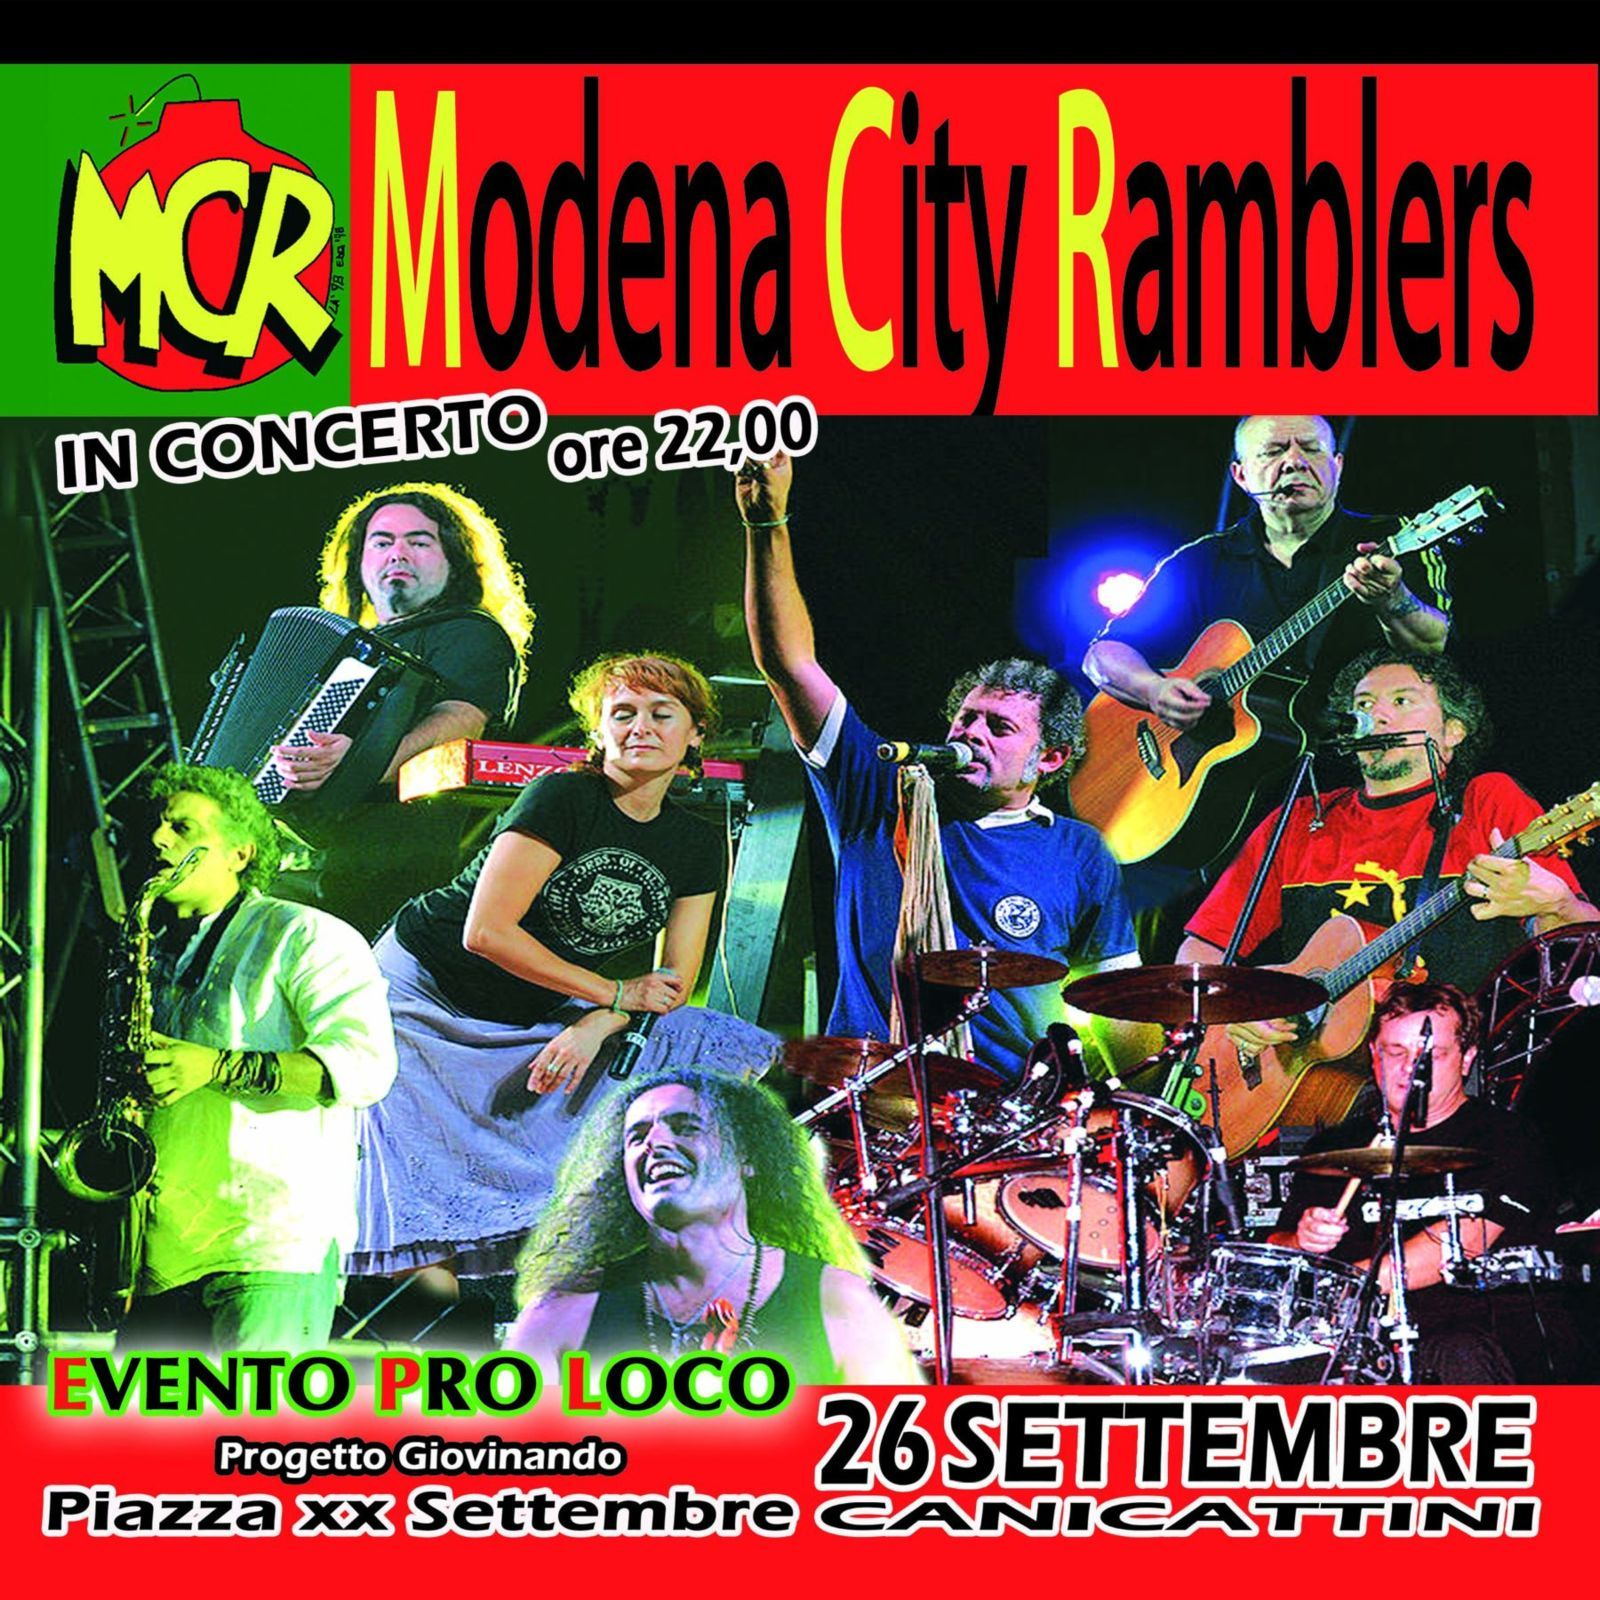 moden_city_ramplers